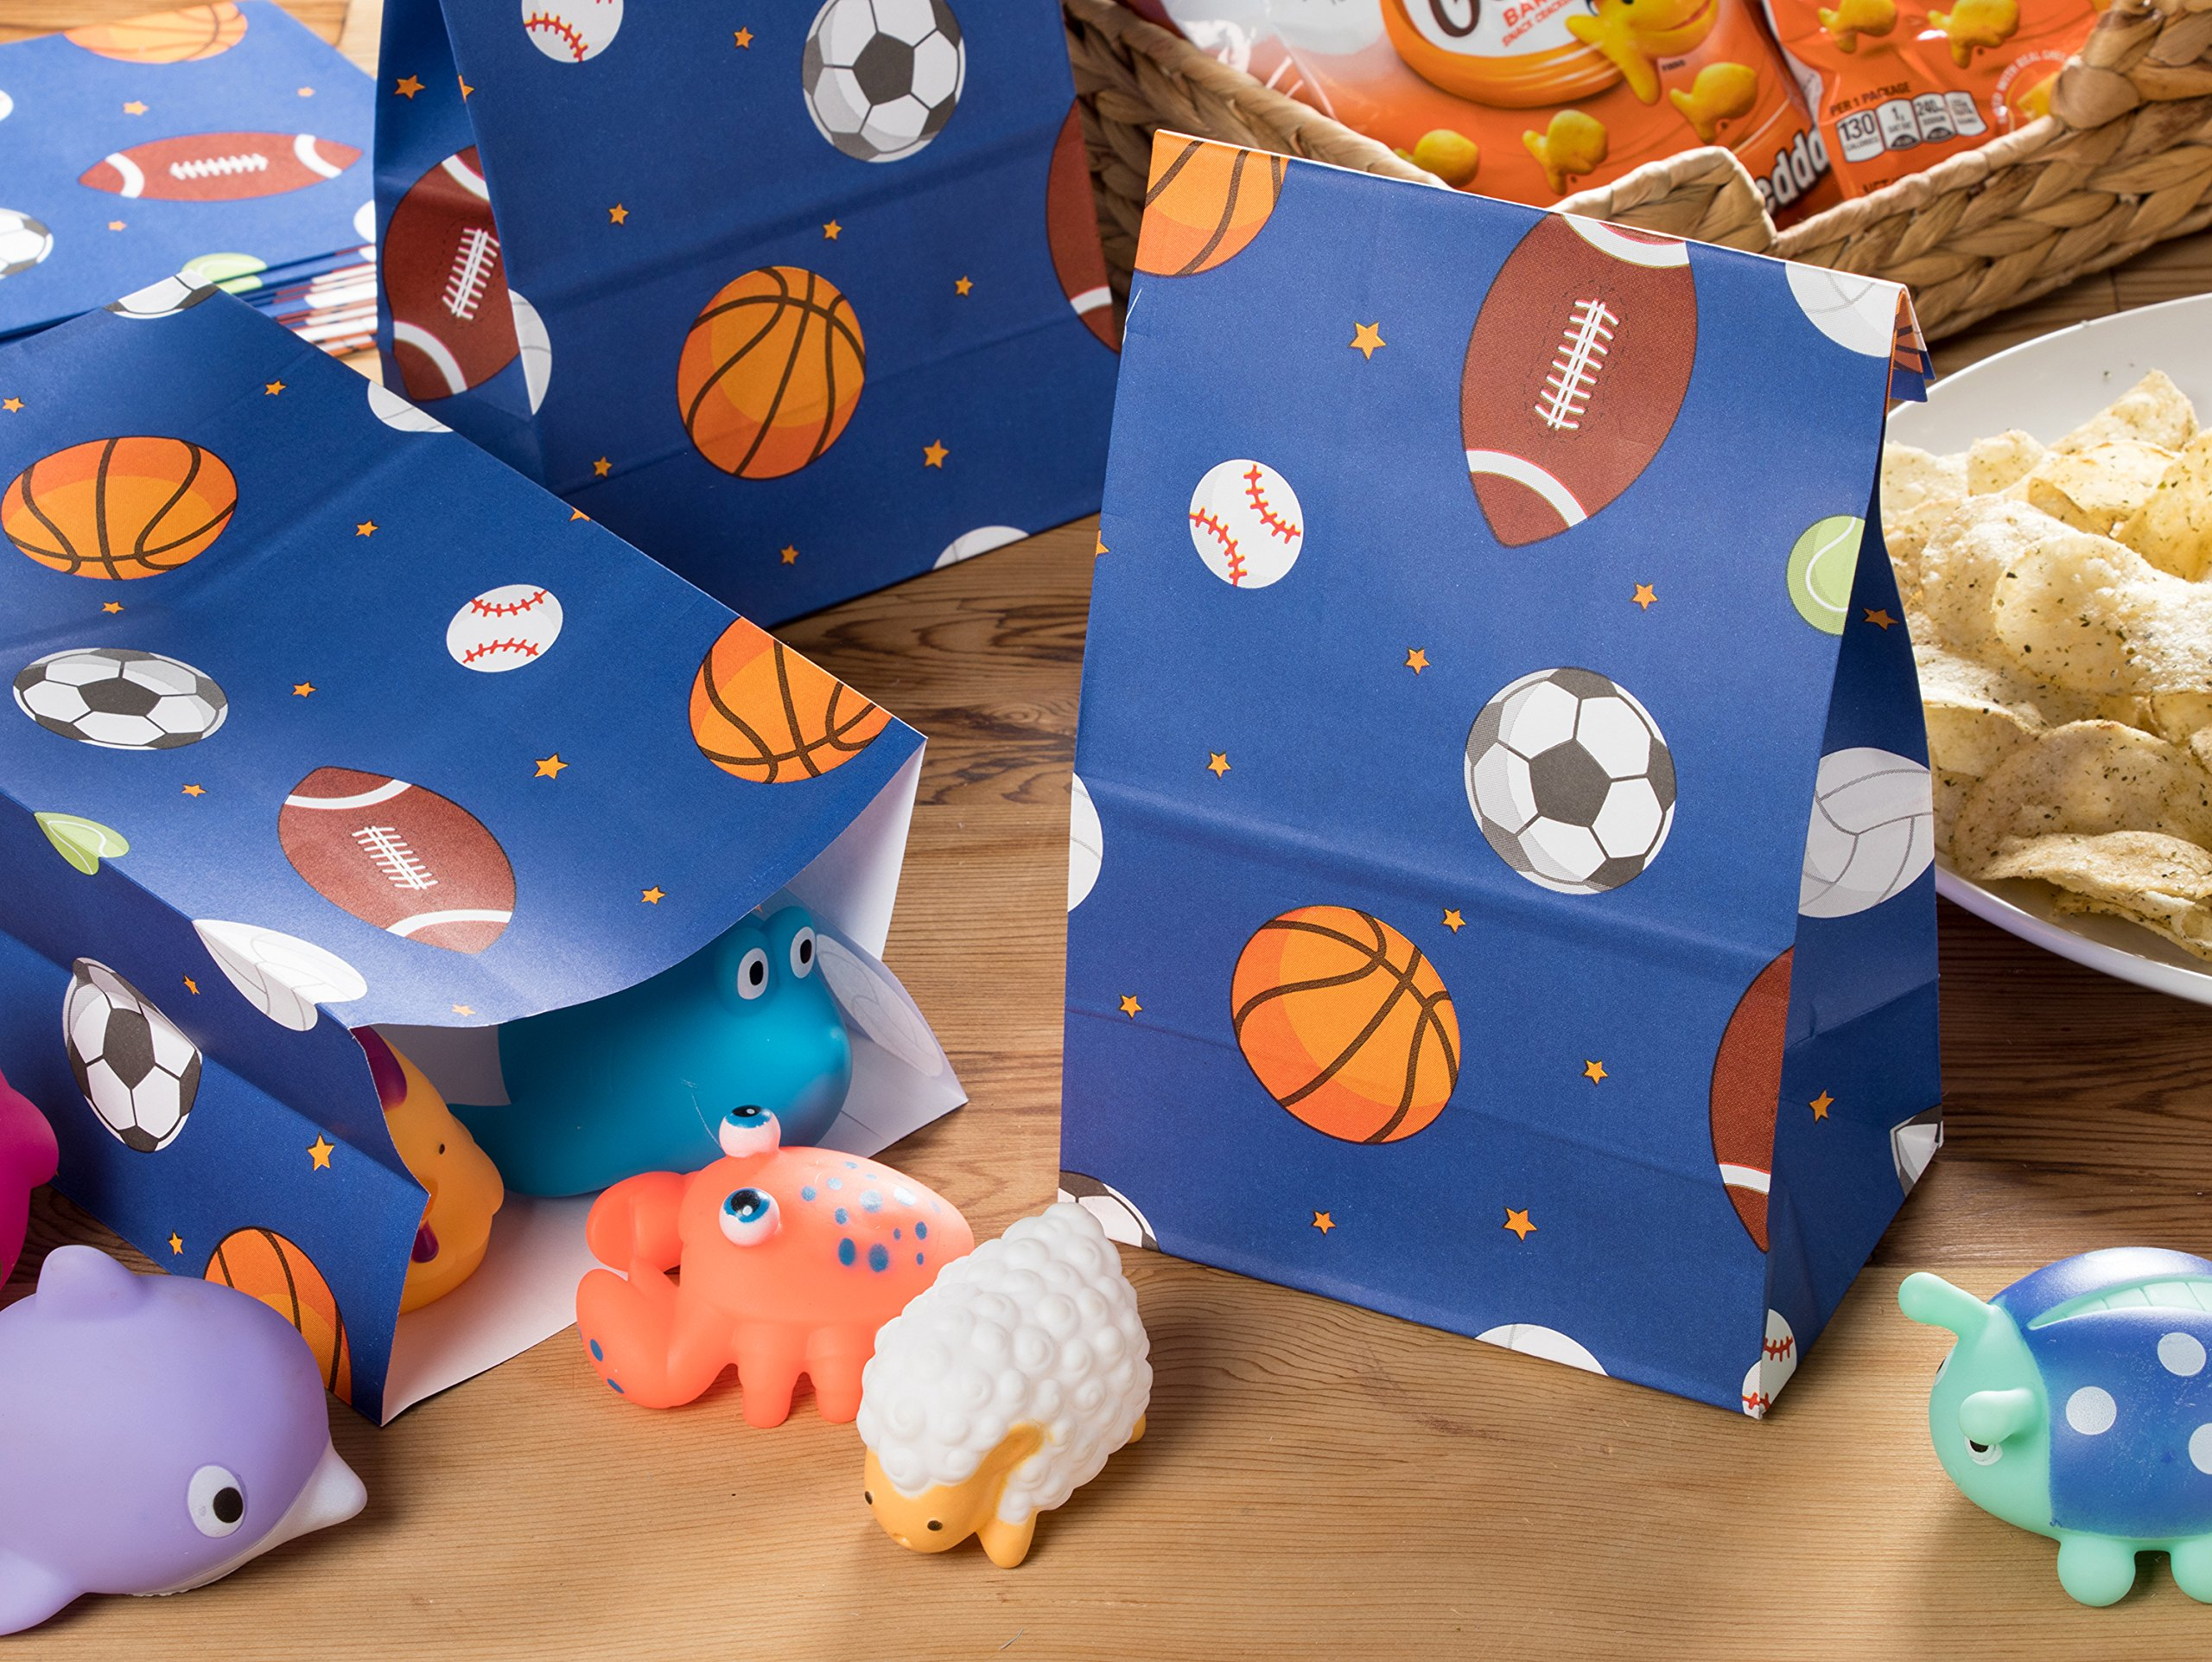 Party Treat Bags - 36-Pack Gift Bags, Sports Party Supplies, Paper Favor Bags, Recyclable Goodie Bags for Kids, Sports Themed Design, 5.2 x 8.7 x 3.3 Inches by Blue Panda (Image #2)